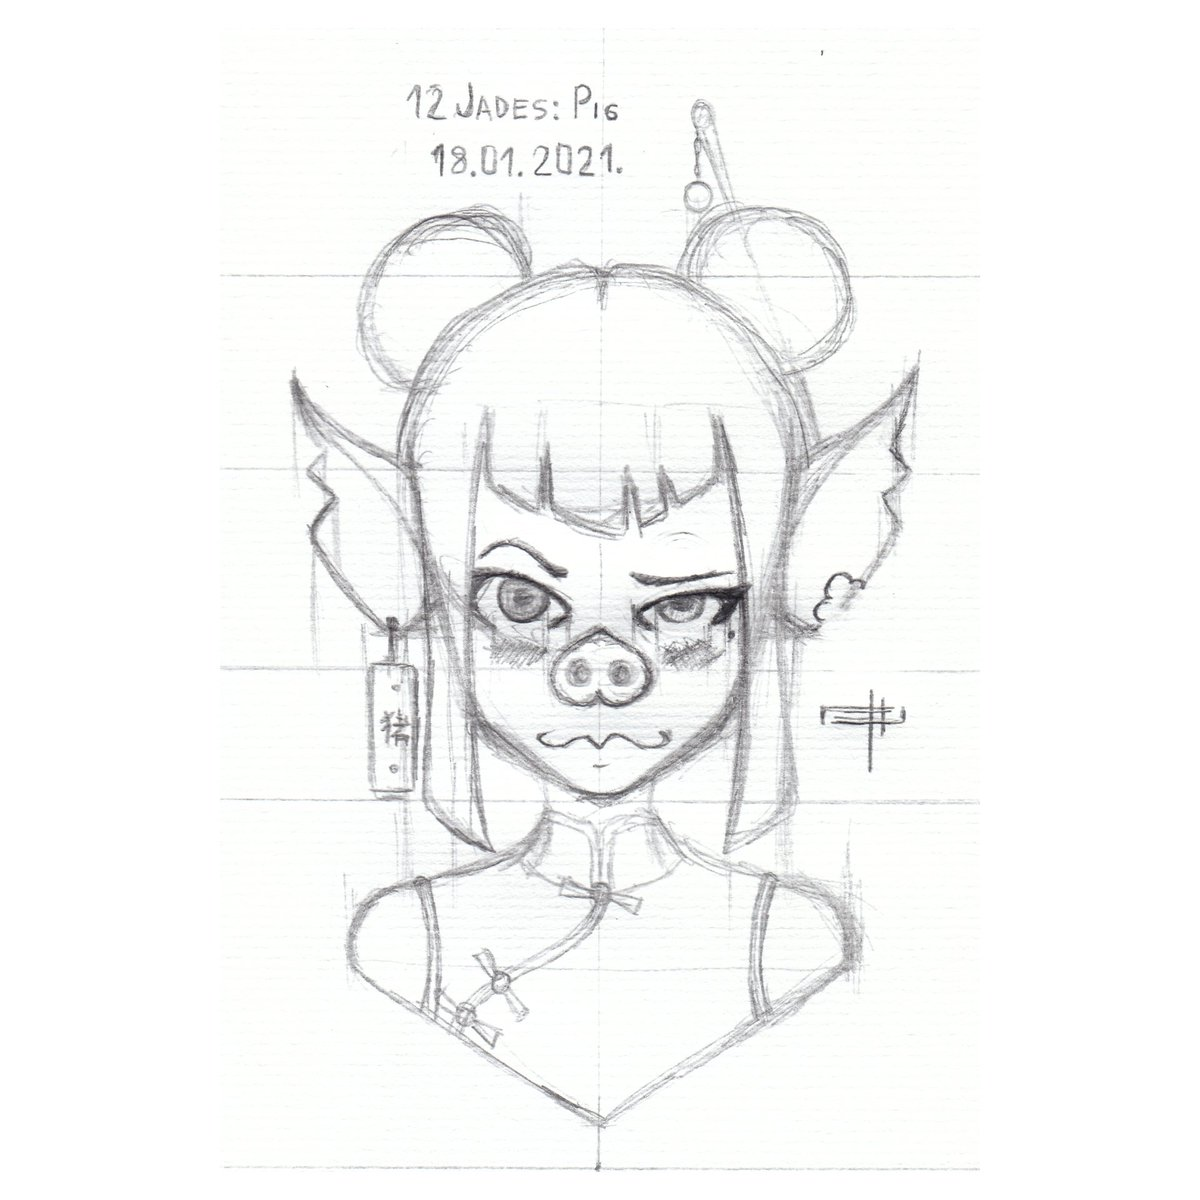 """[18.01.2021.] - """"12 Jades: Pig""""  Pig is generaly kind though a mysterious character  #dailyart #pencil #pencilart #ilustration #drawing #sketch #pig #oc #original  #femaleoc #female #chinesecalendar #chinesezodiac"""